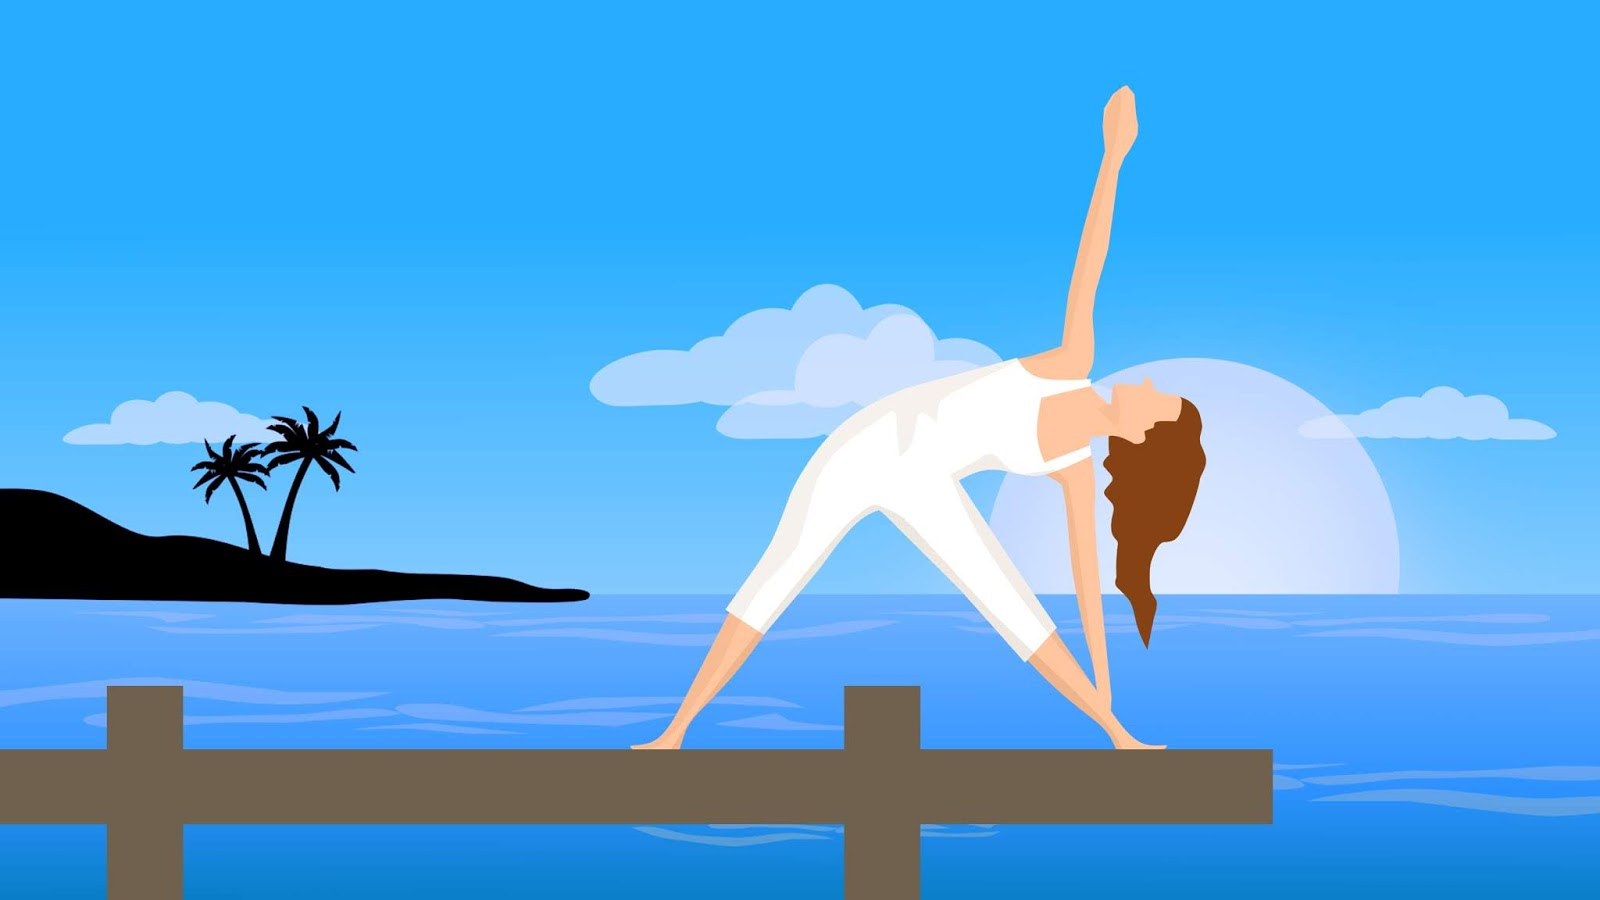 Illustration of woman yoga pose outdoor